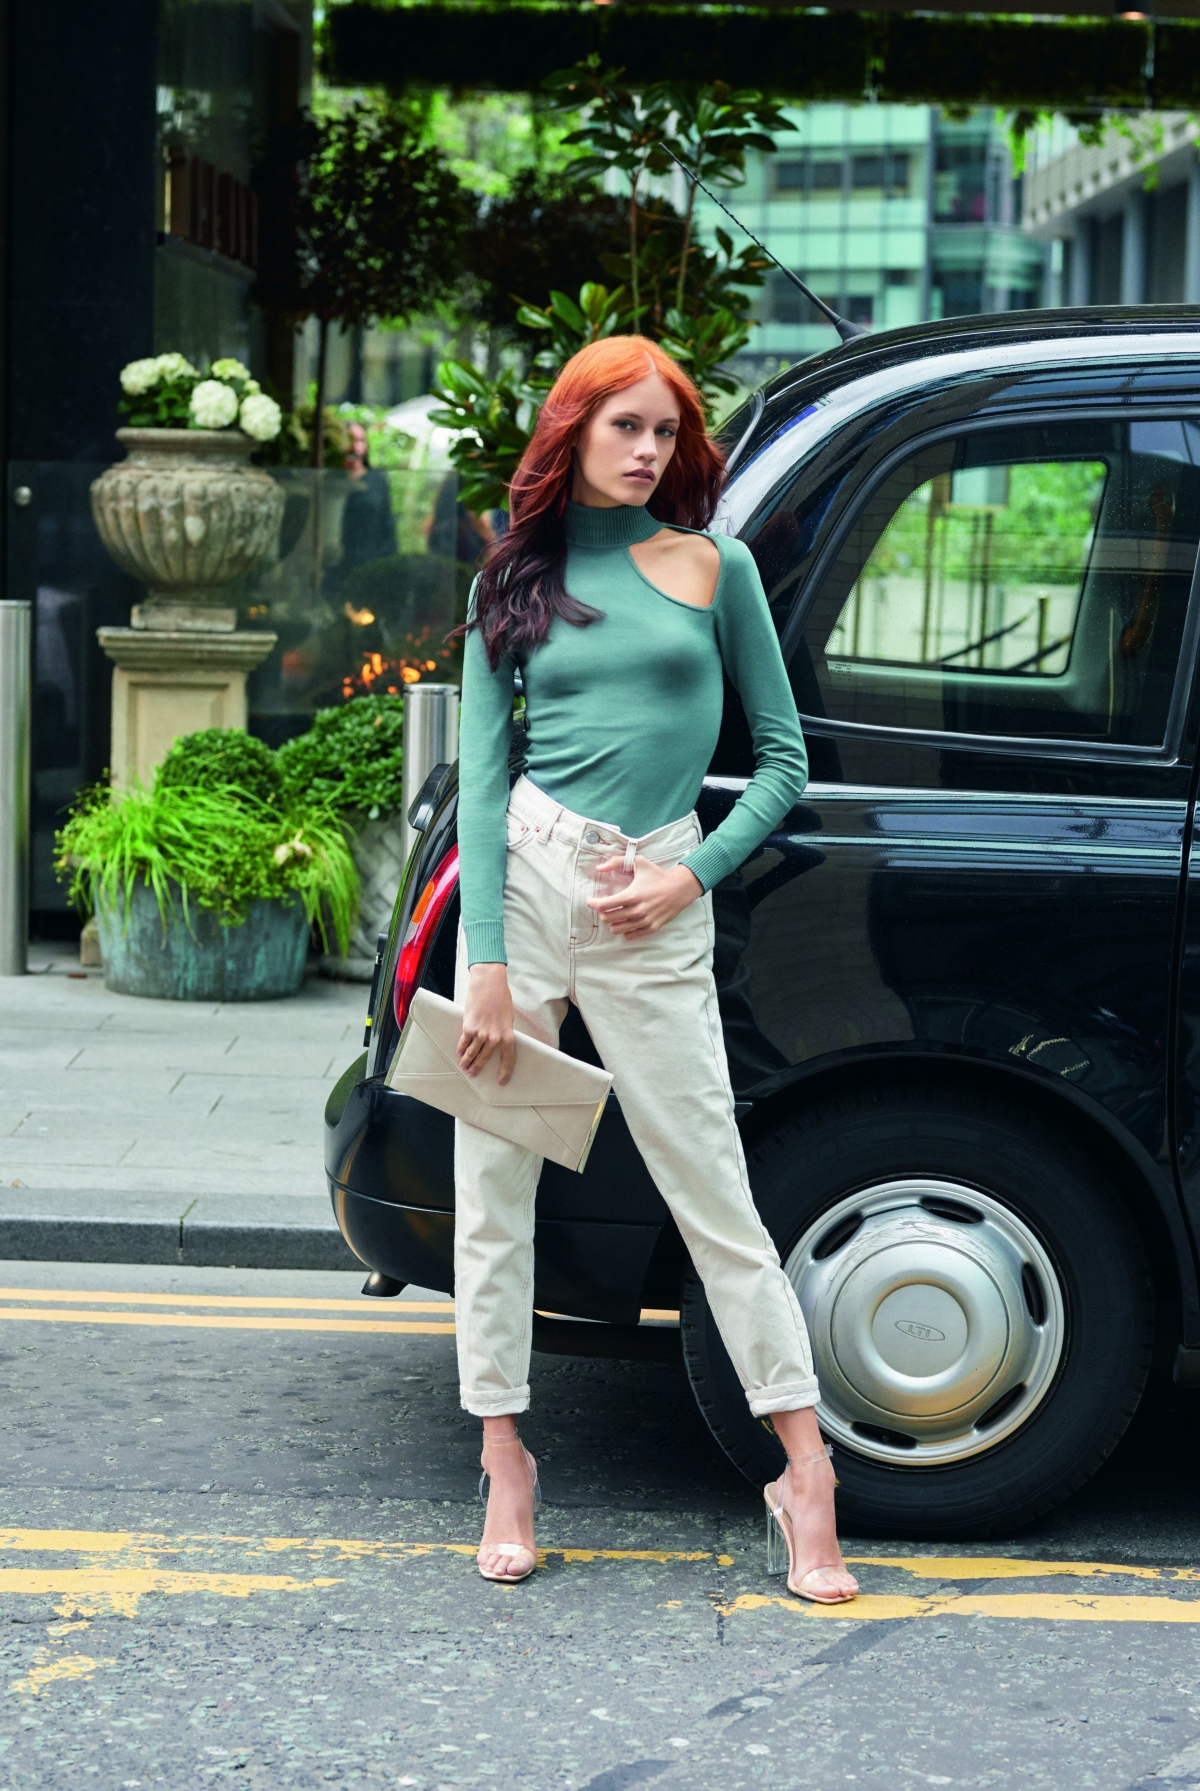 Indola_Smart_Street_Style_Summer_Collection_2020_8